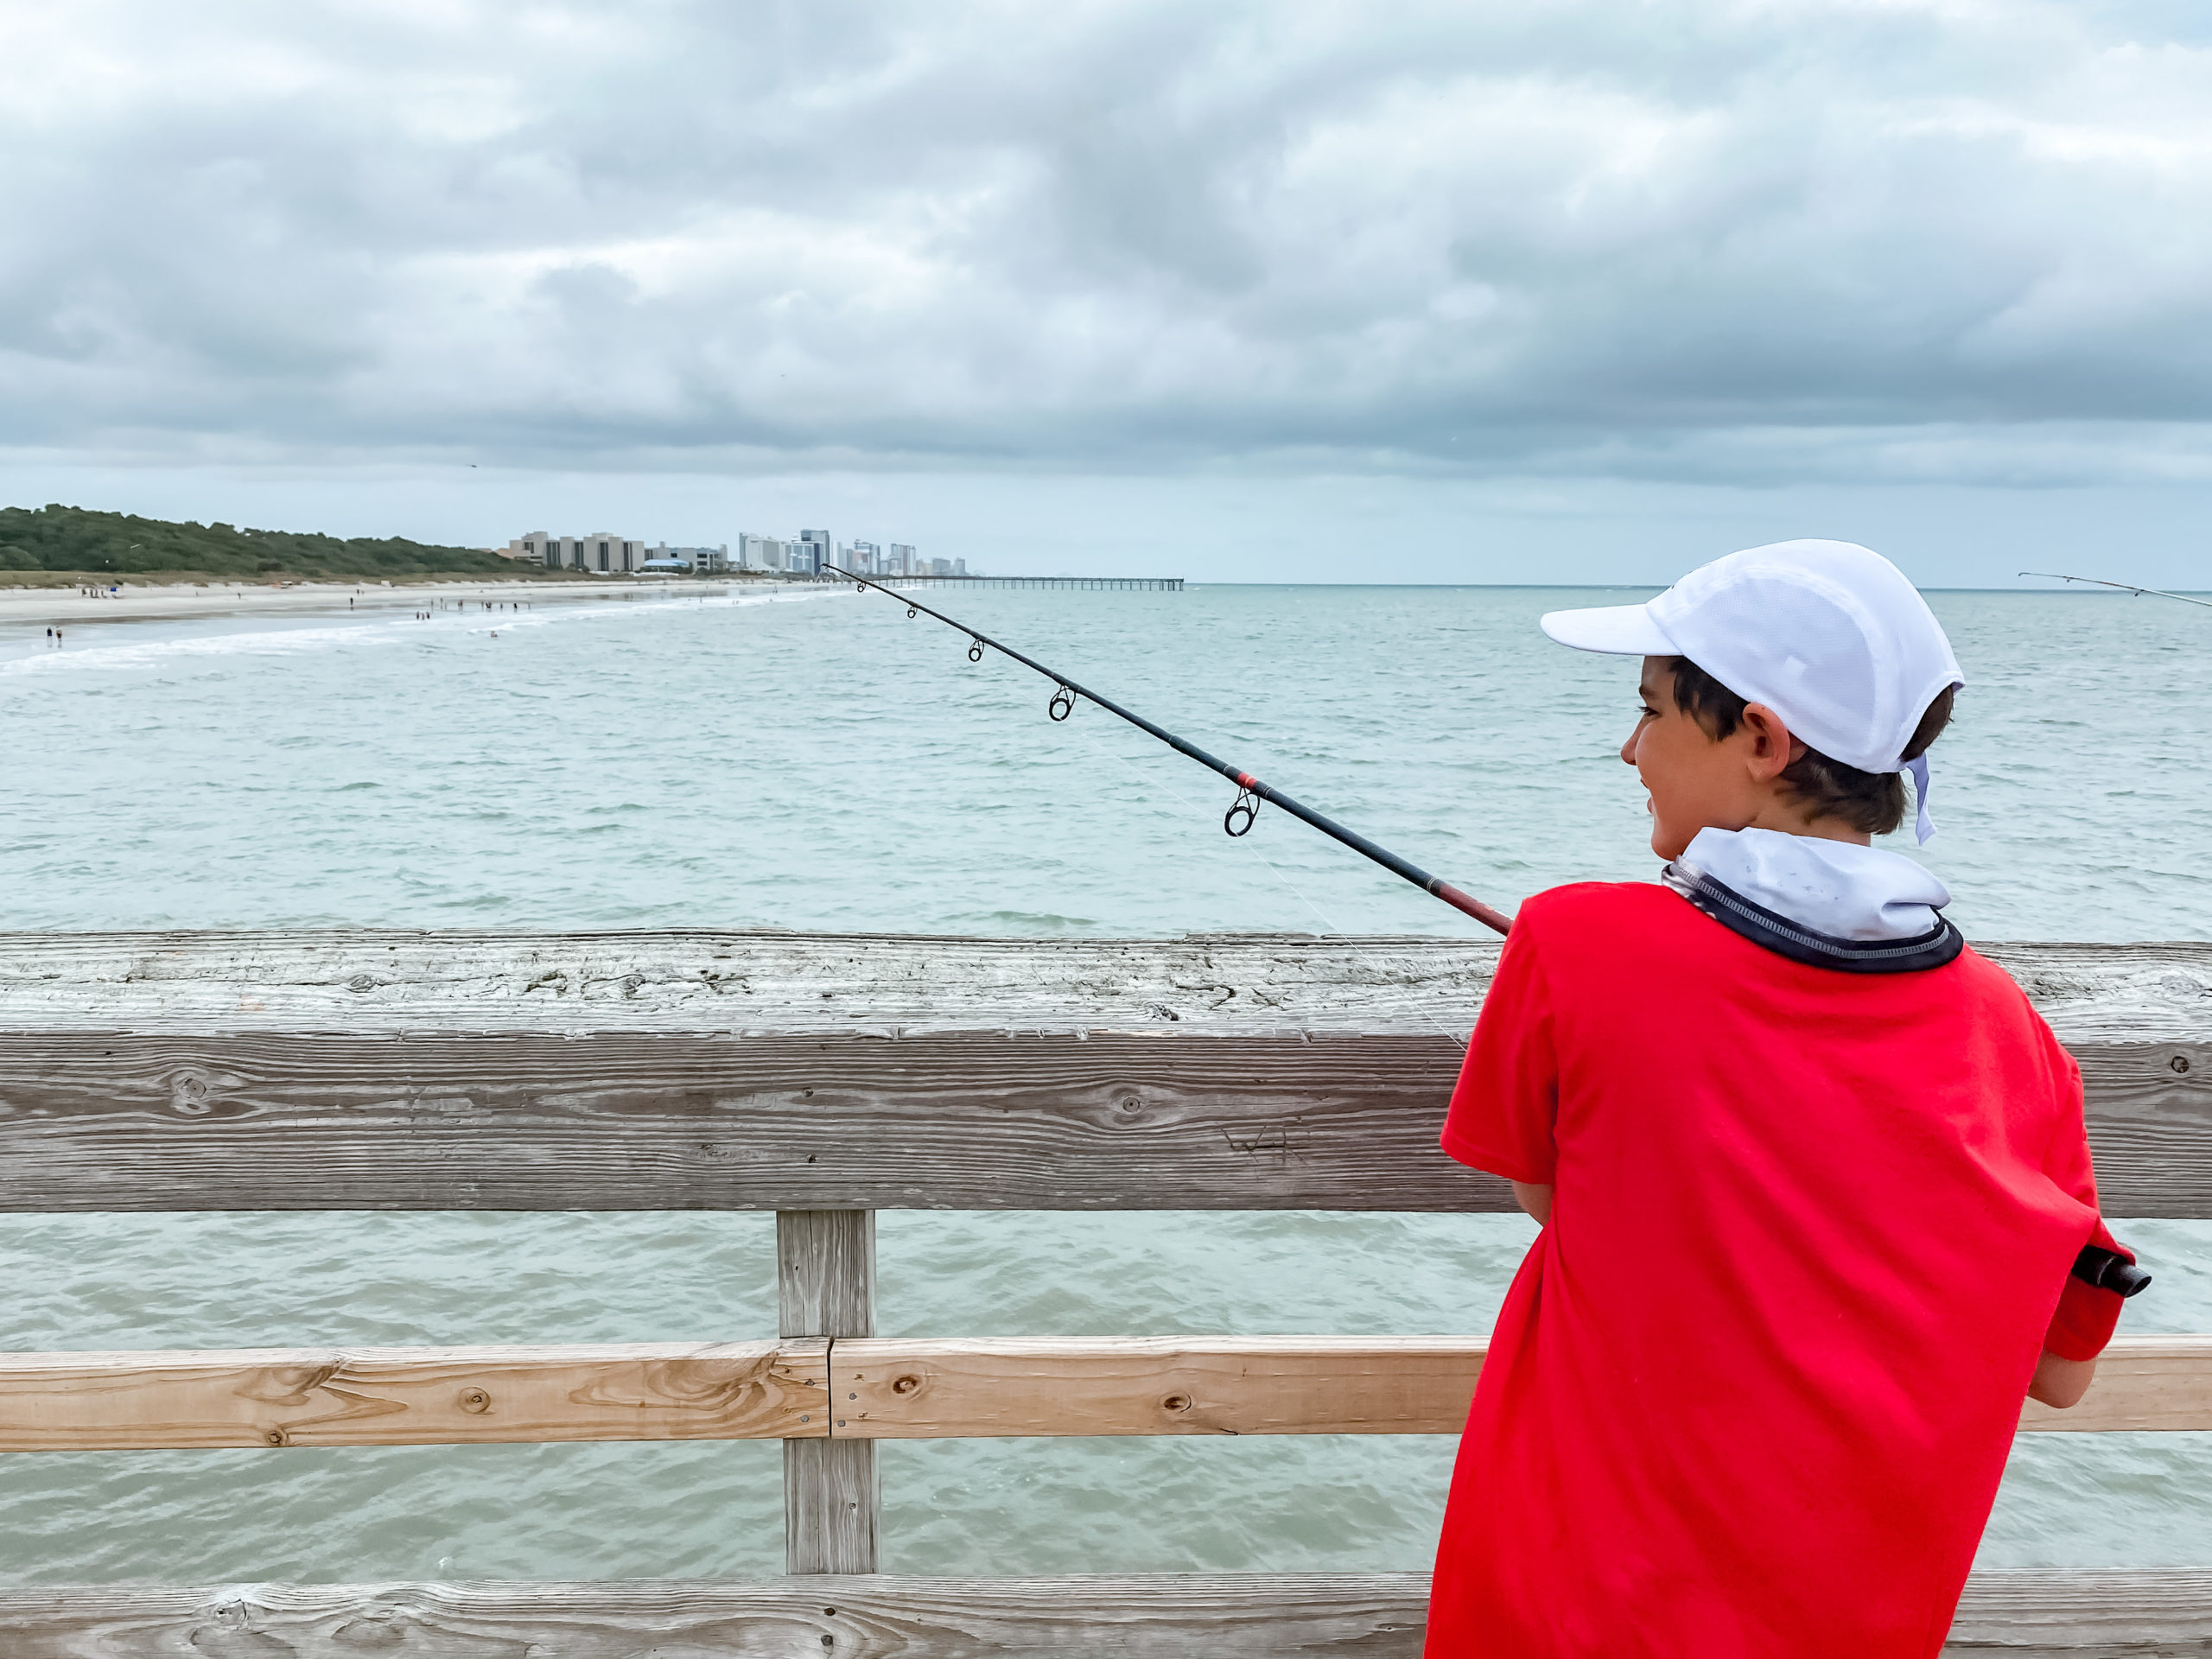 Fishing at Myrtle Beach State Park